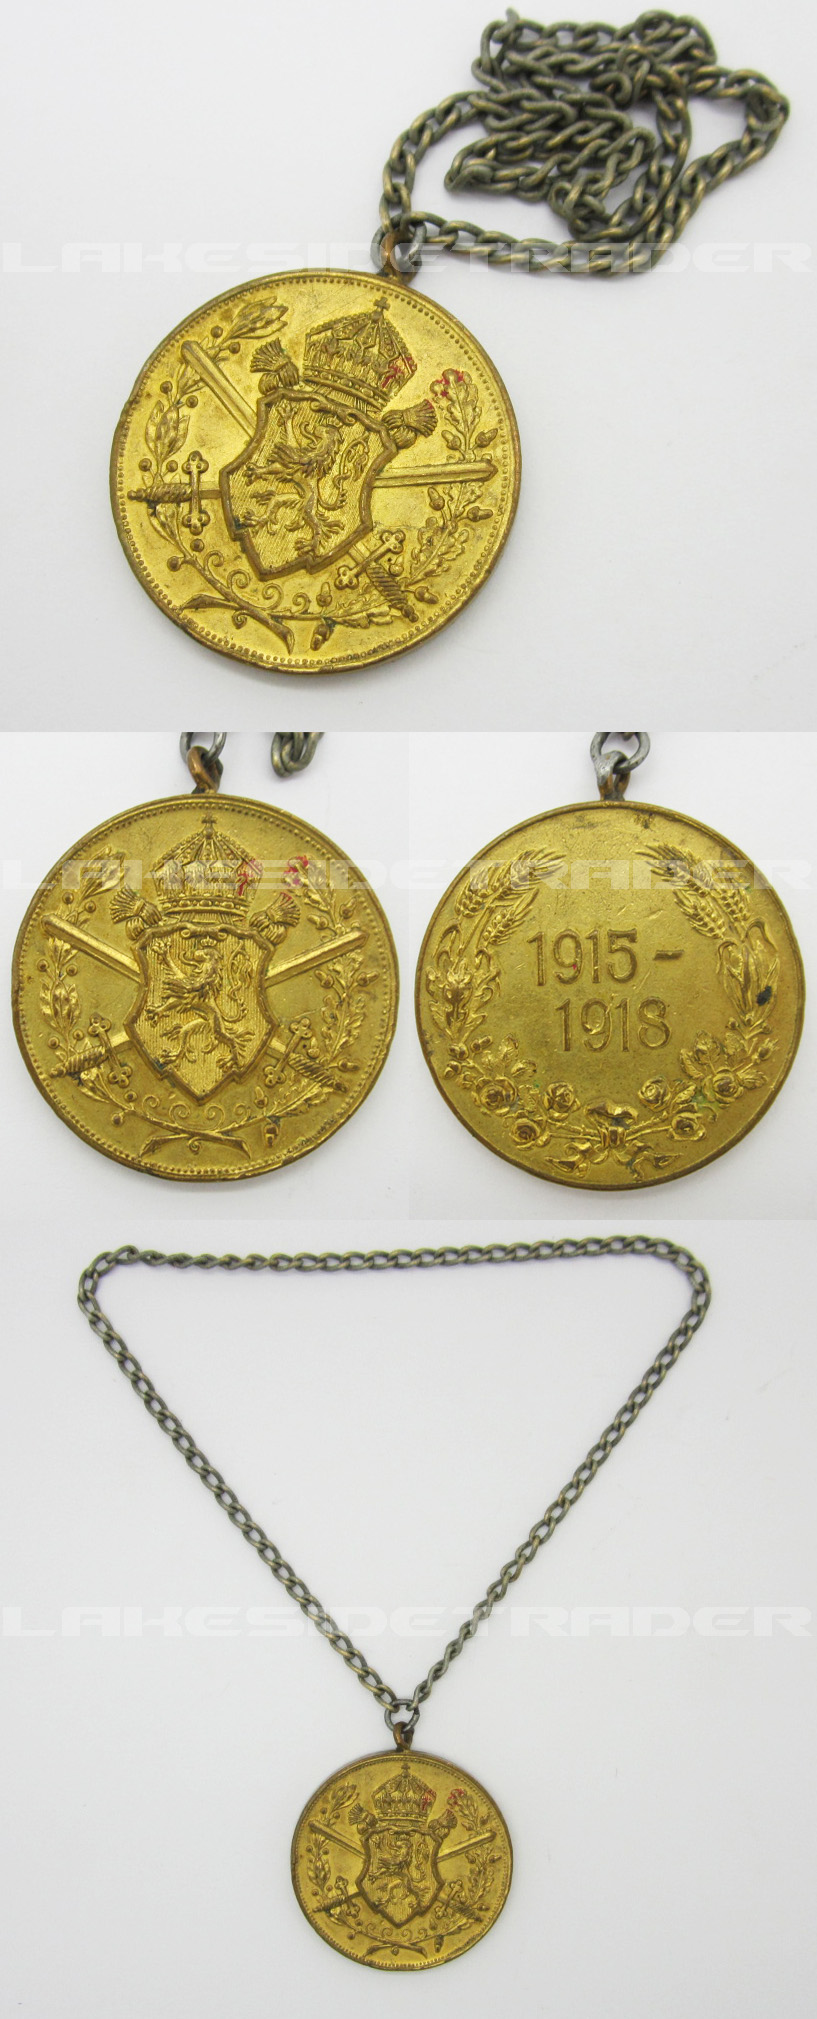 Bulgarian Commemorative War Medal 1915-1918